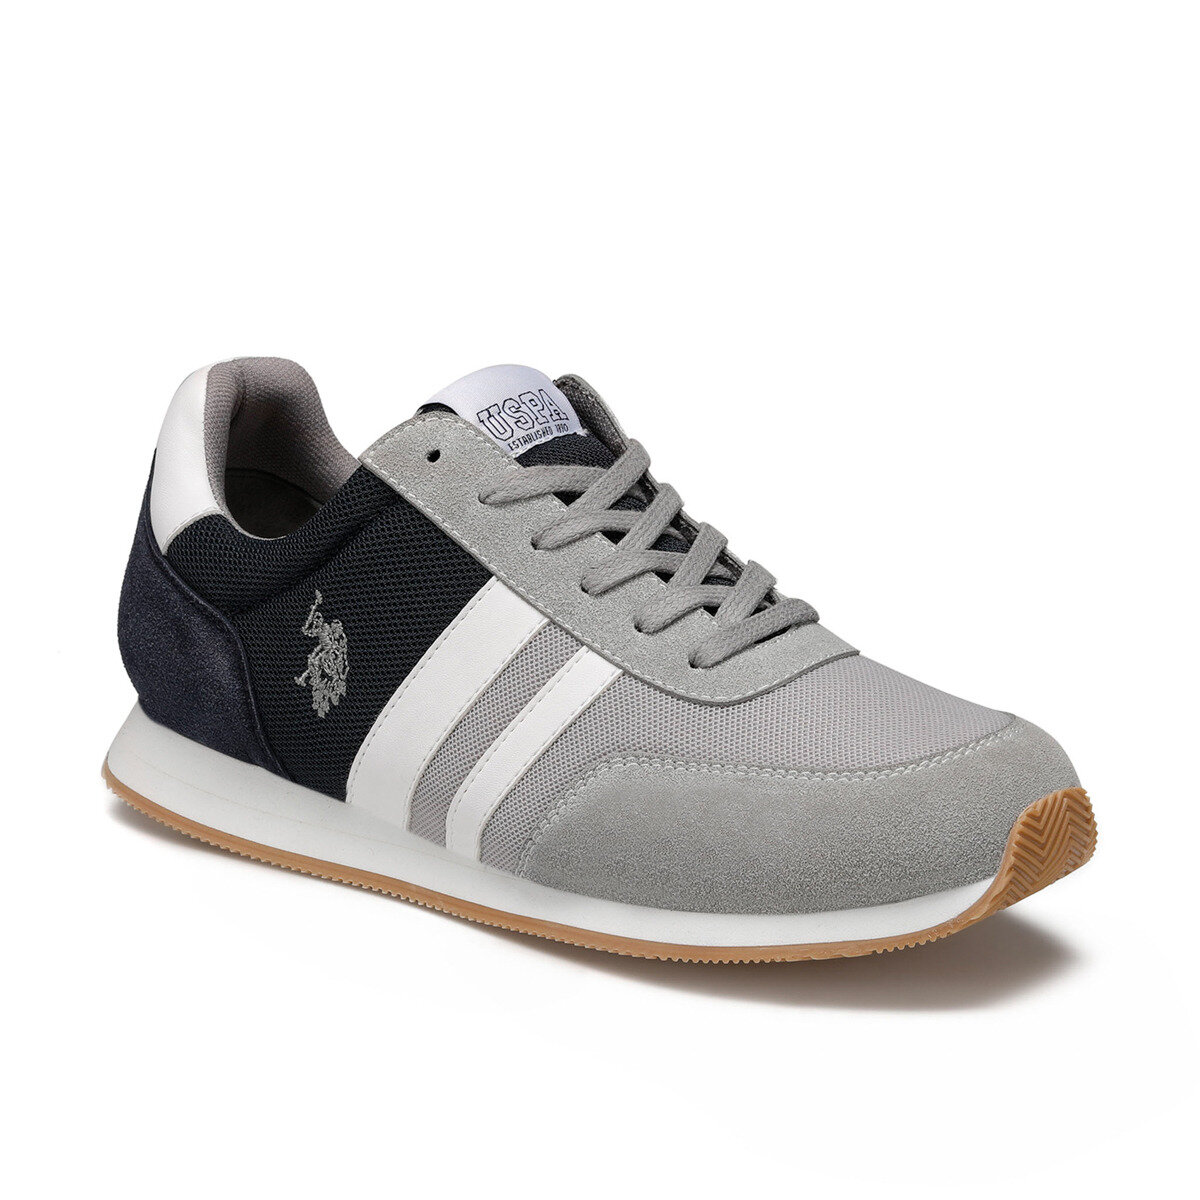 FLO Gray Men Sneakers Sports Shoes Summer Sneakers Casual Shoes Men Comfortable Zapatillas Hombre Running Hombre U.S. POLO ASSN.